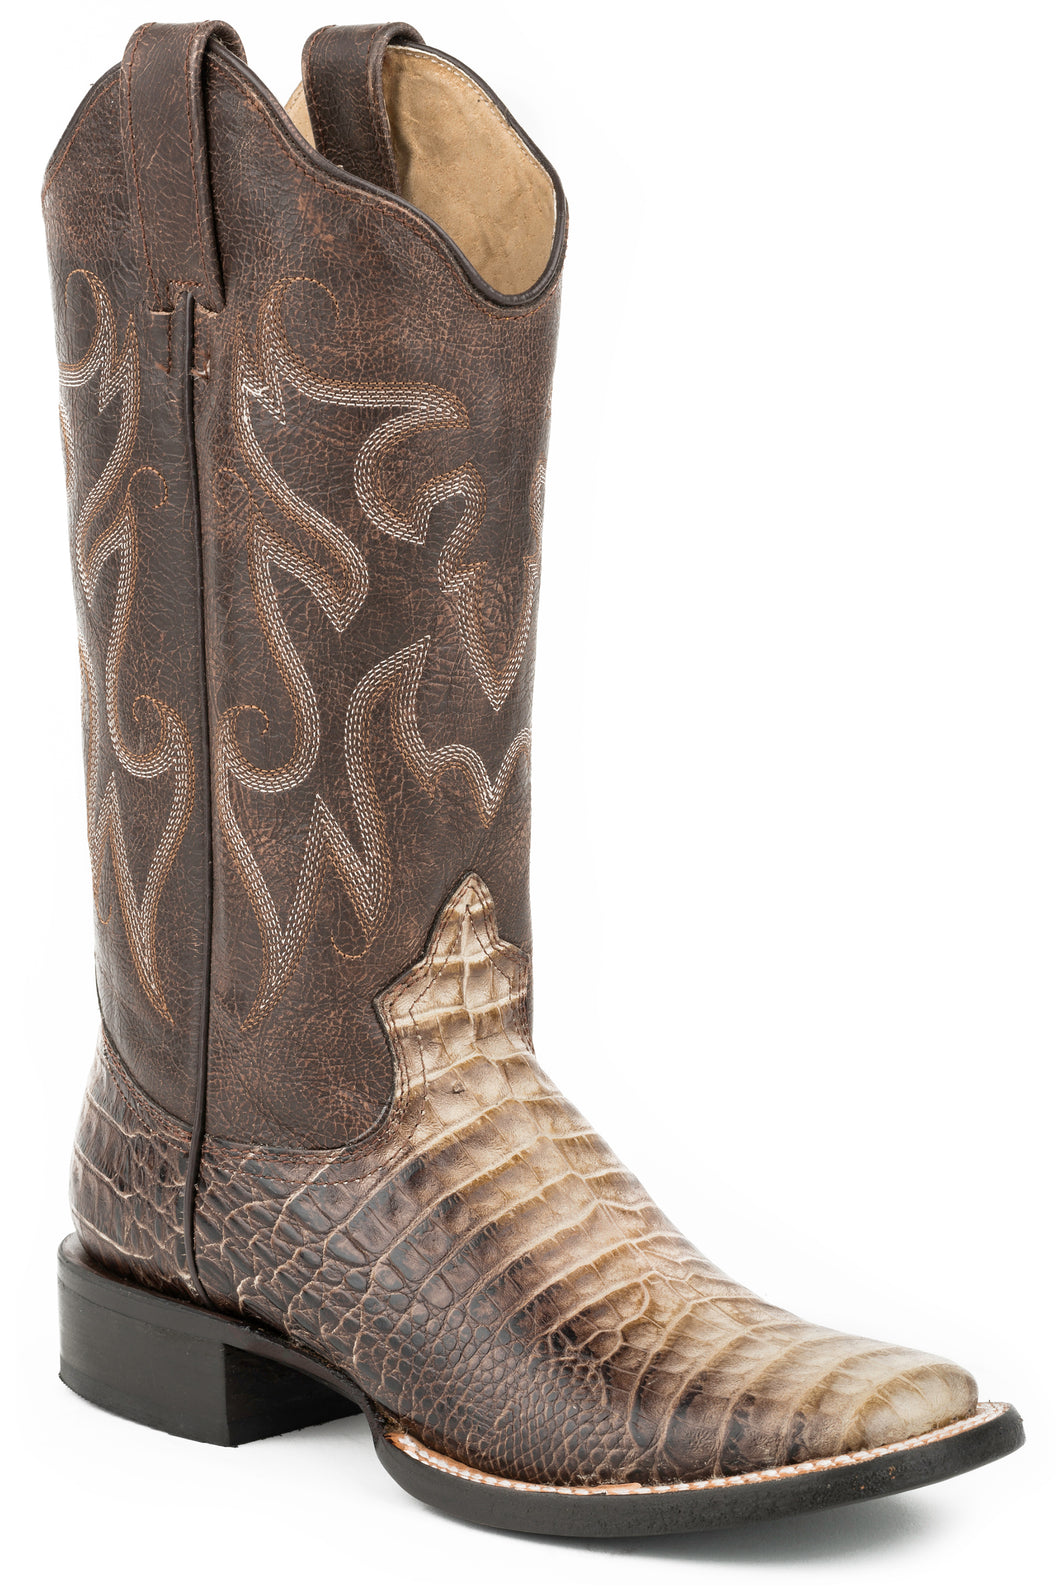 Sandy Croc Boot Ladies Boot Faux Brown Croc Wsanded Brown Shaft